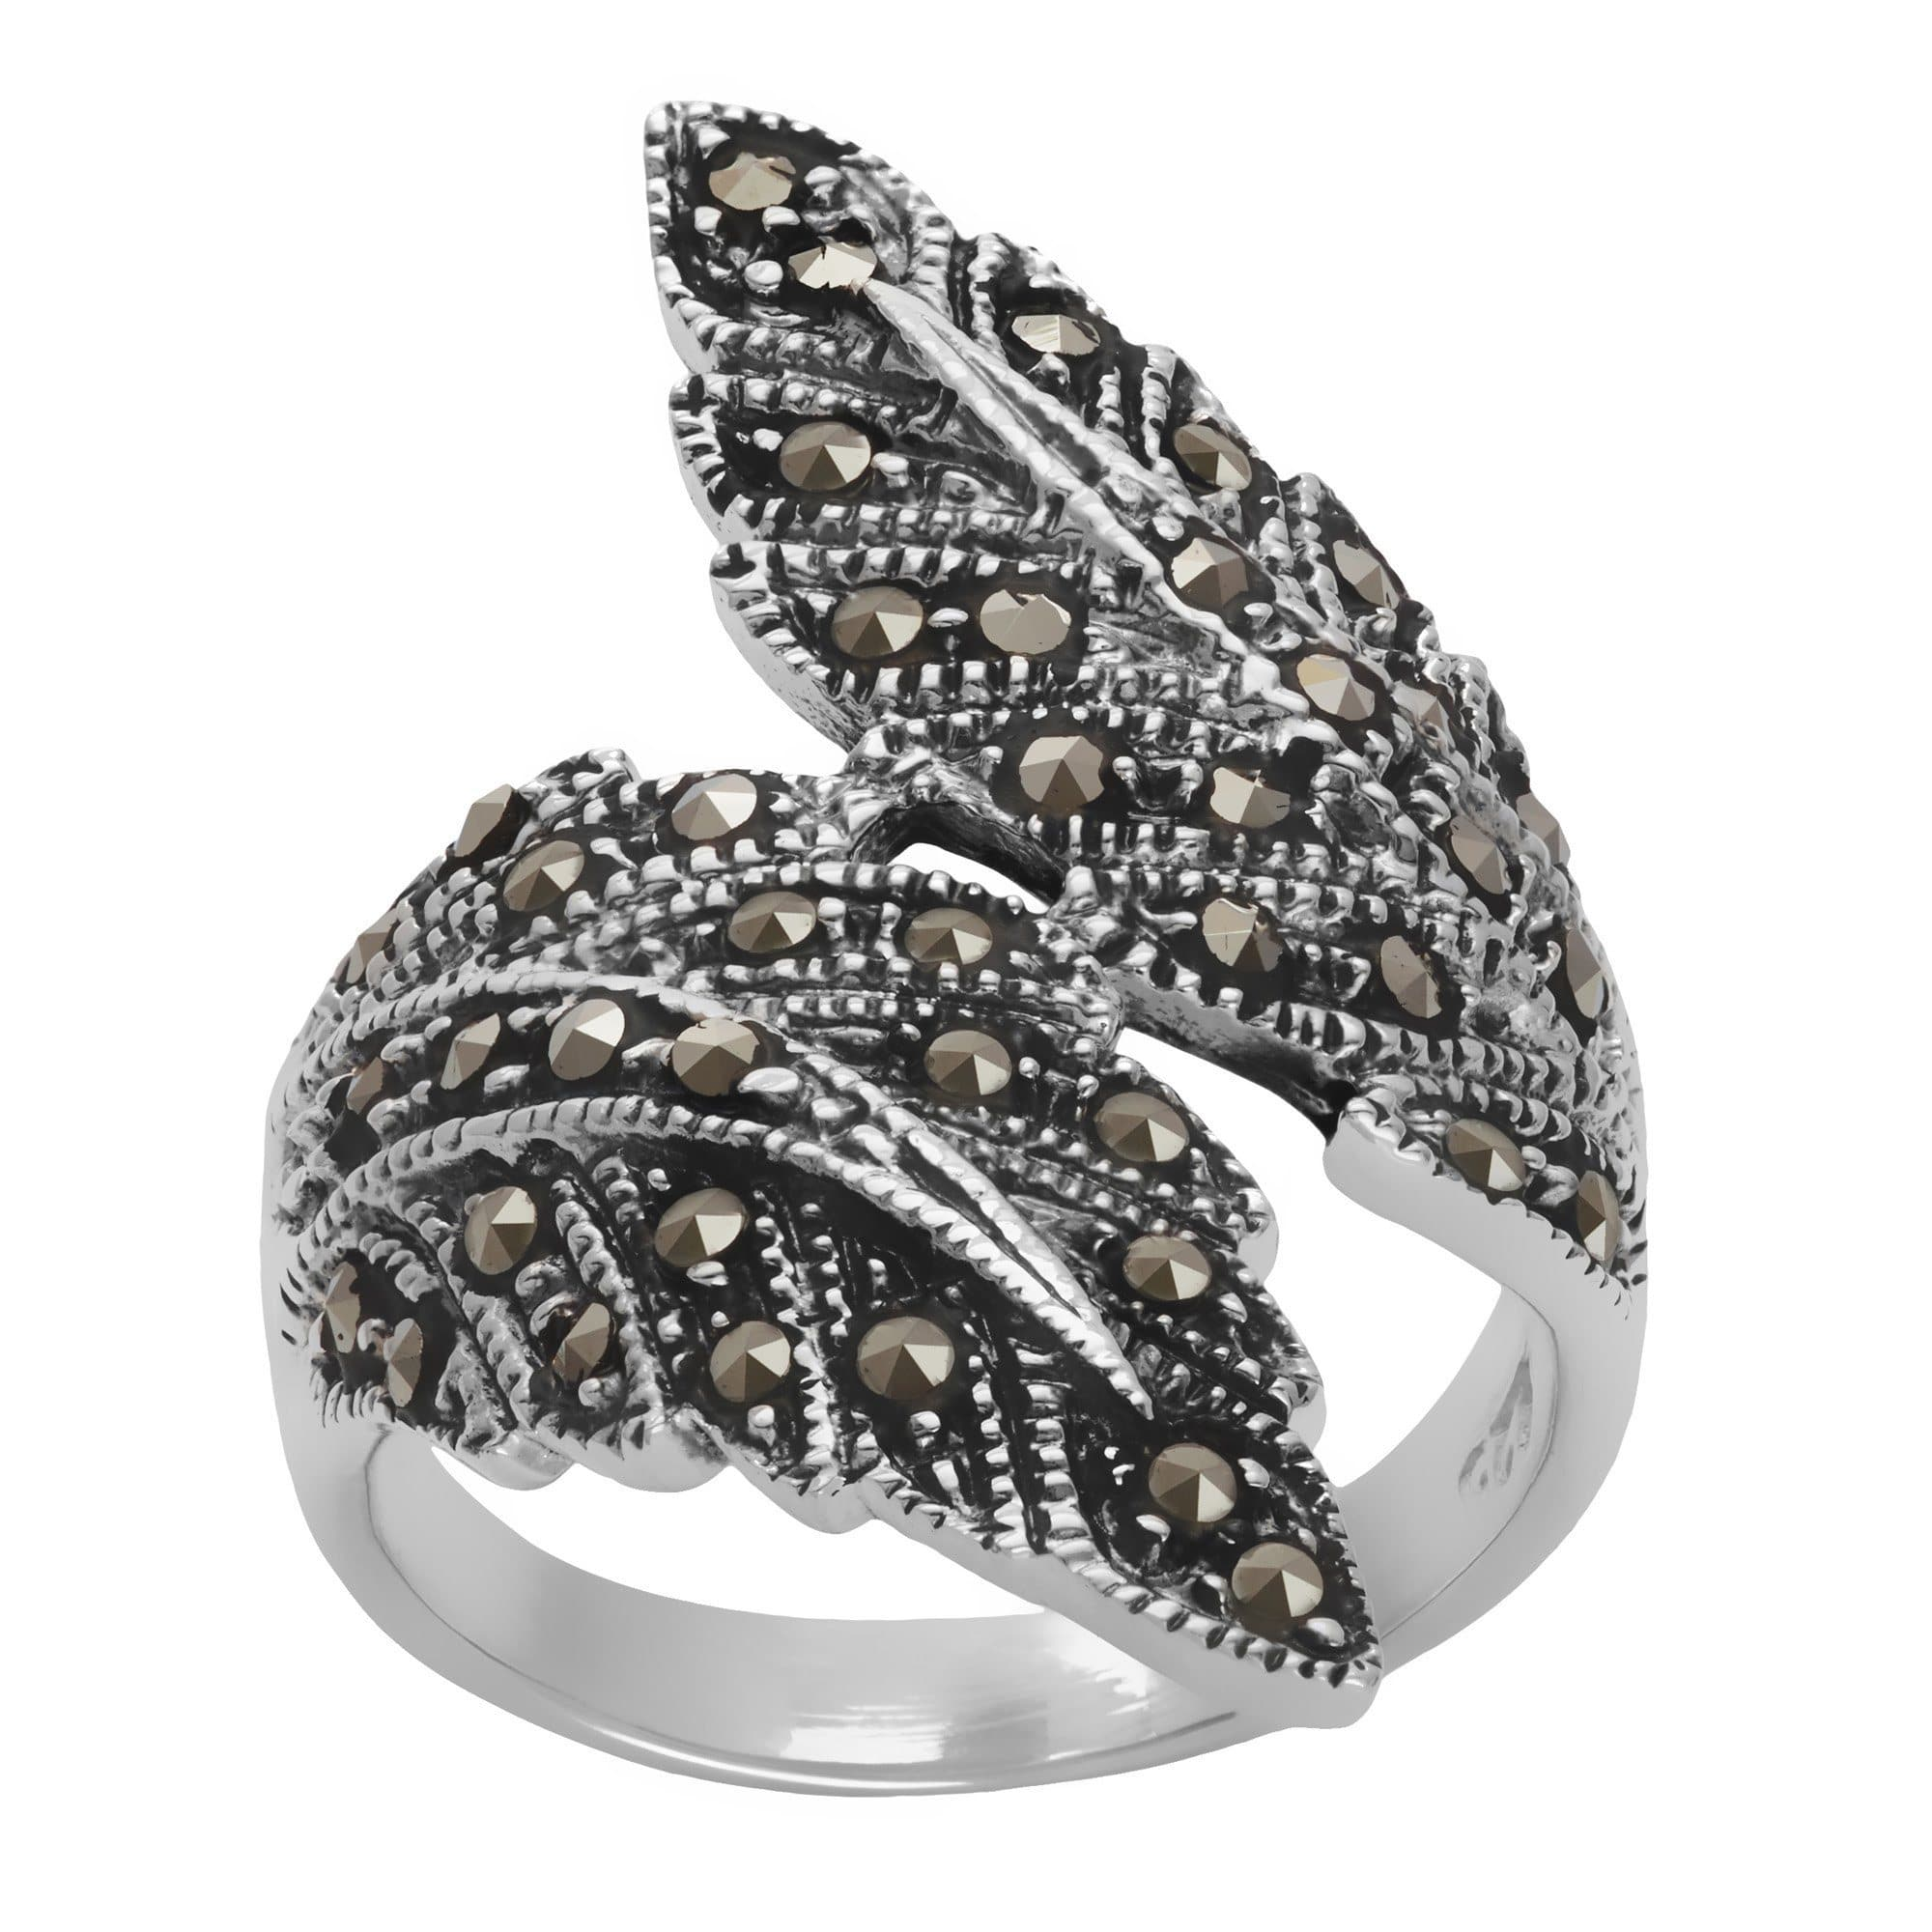 rings concept wedding ring engagement ideas bohemian new elegant of feather pics jewls silver navajo